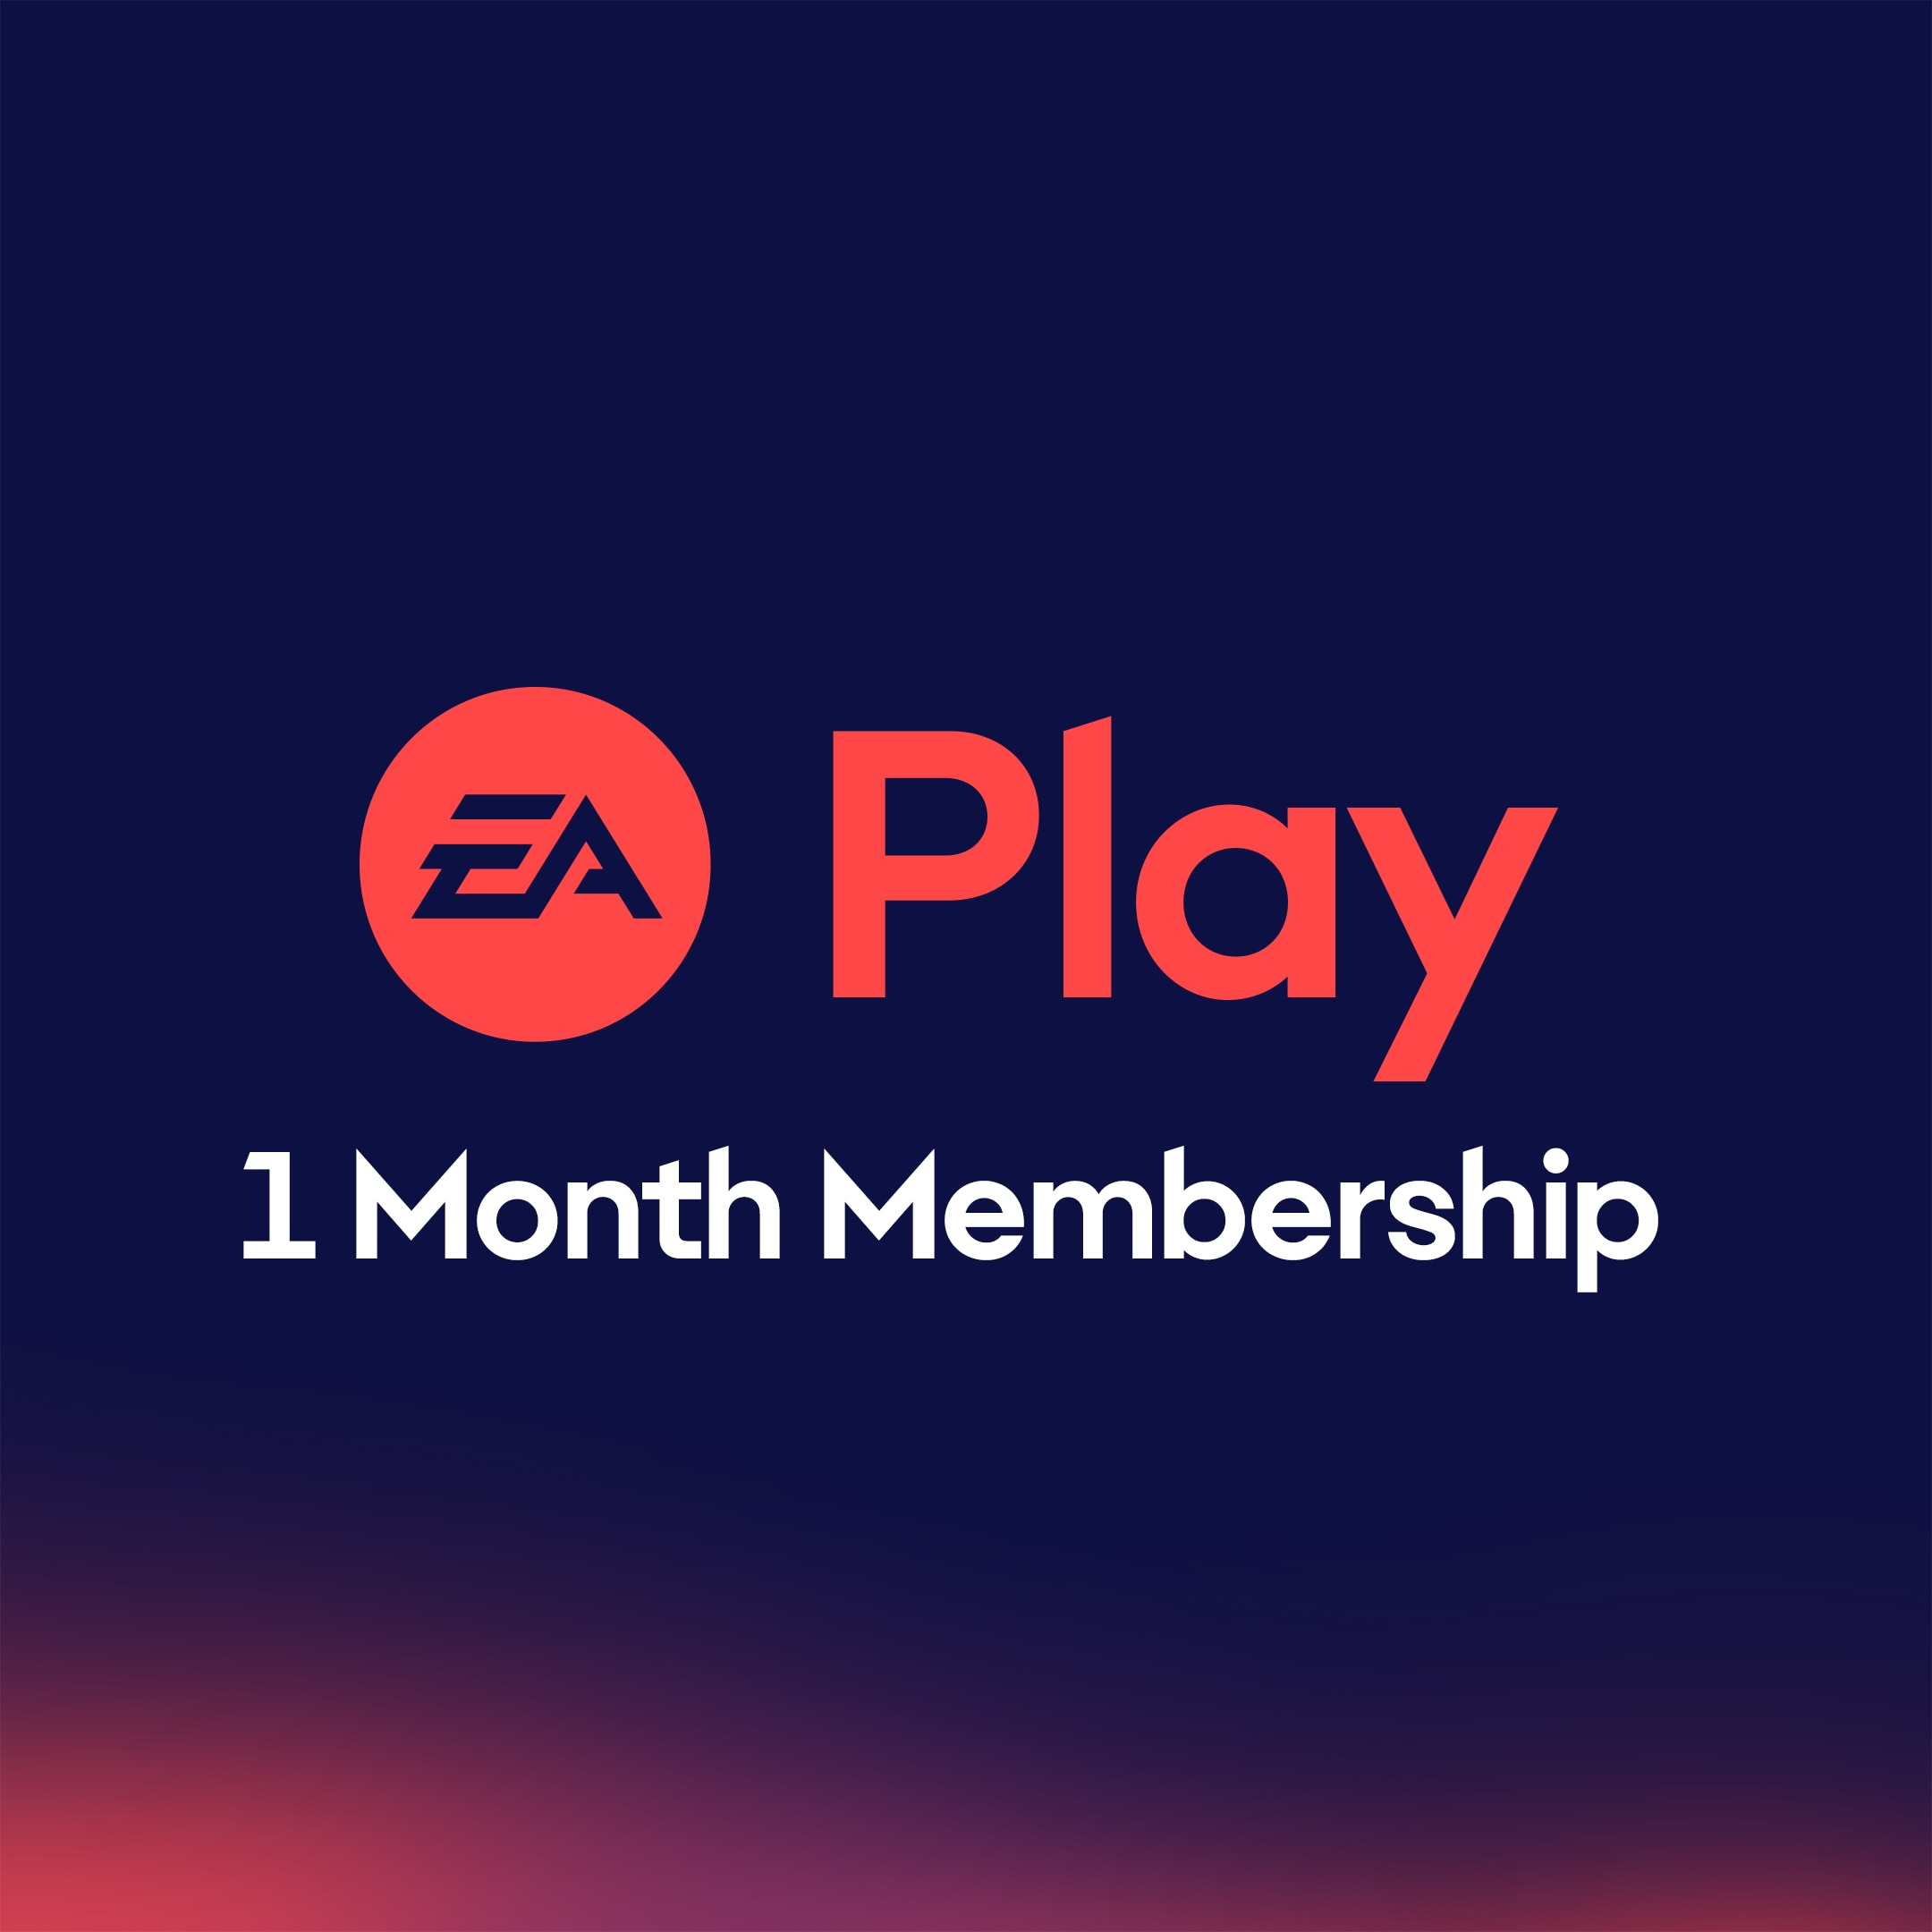 EA Play 1 Month